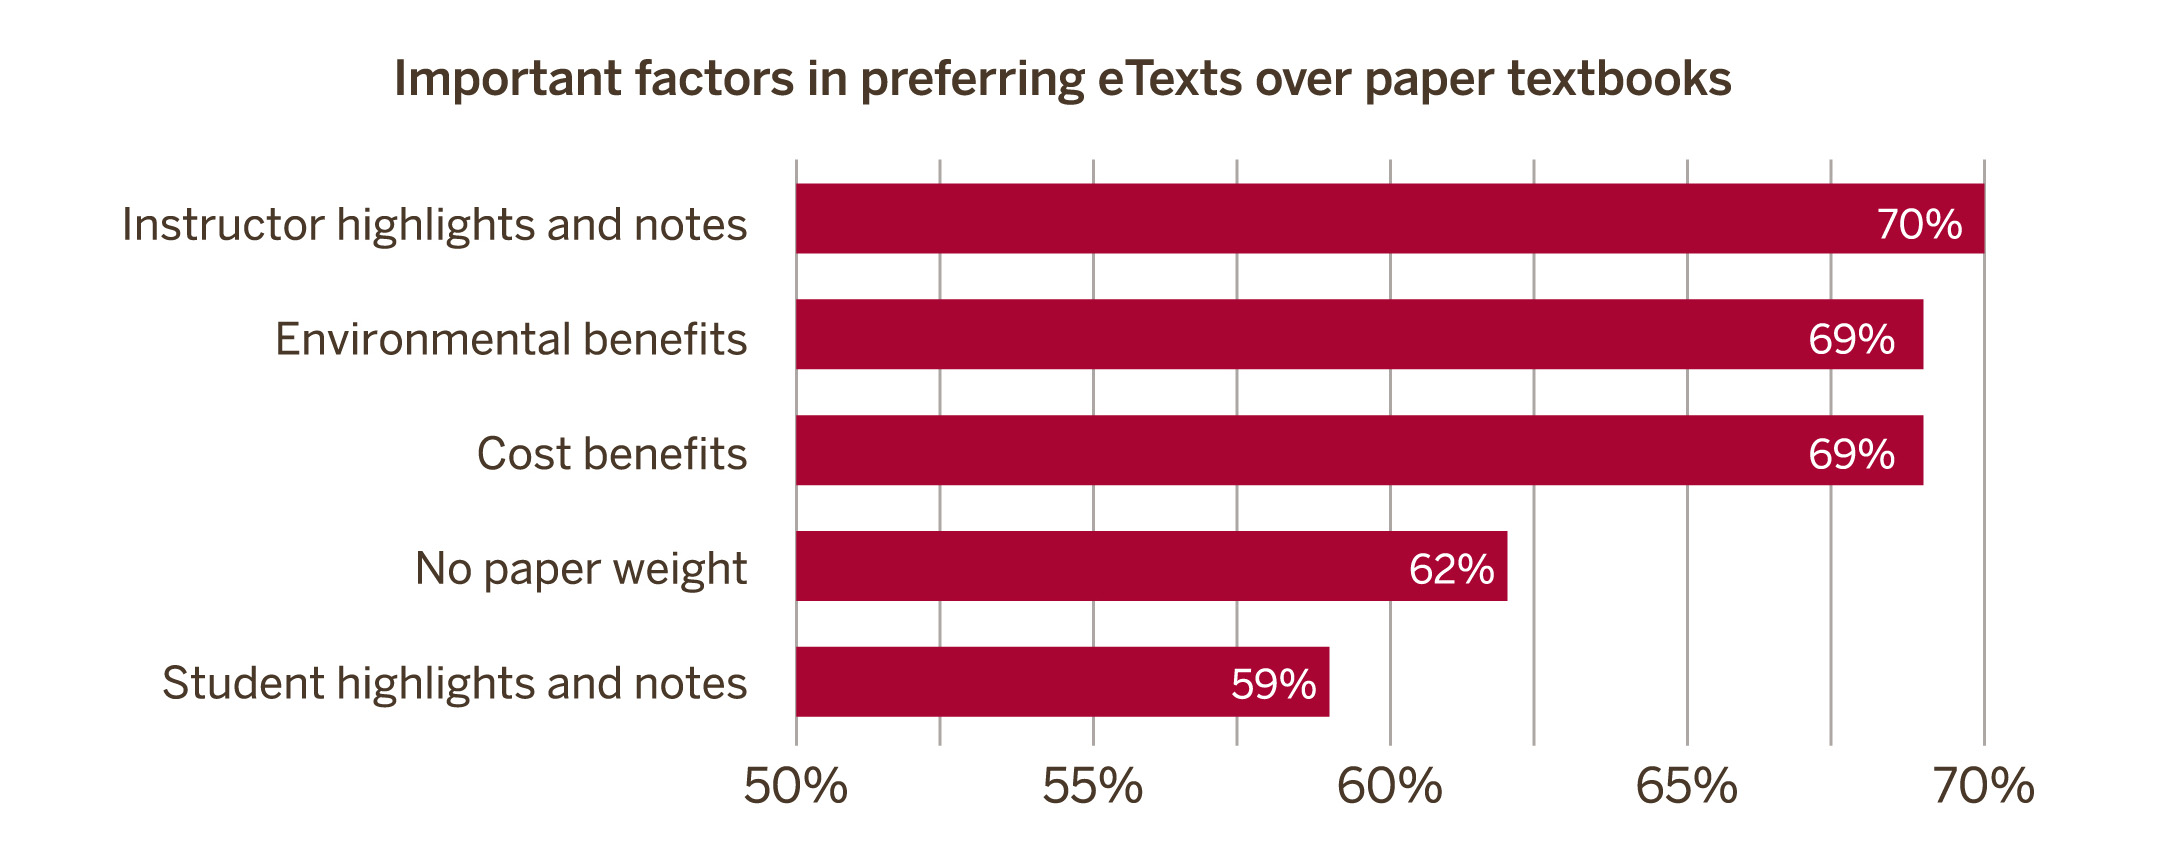 Important factors in preferring eTexts over paper textbooks